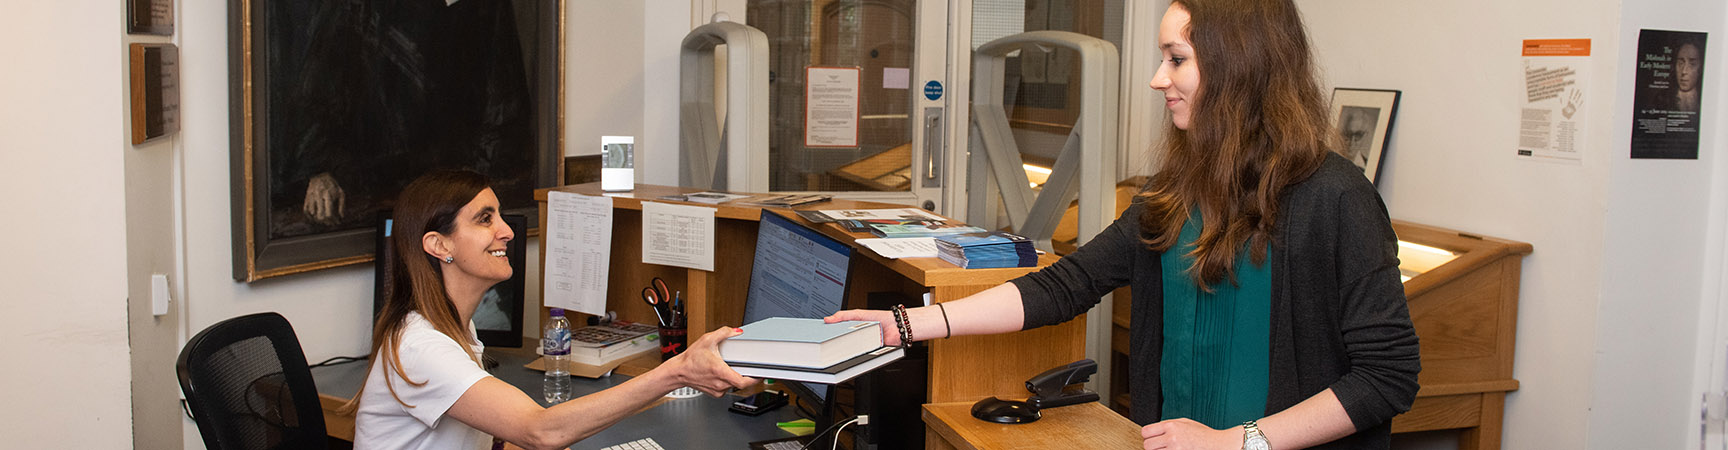 A librarian hands over a book to a student